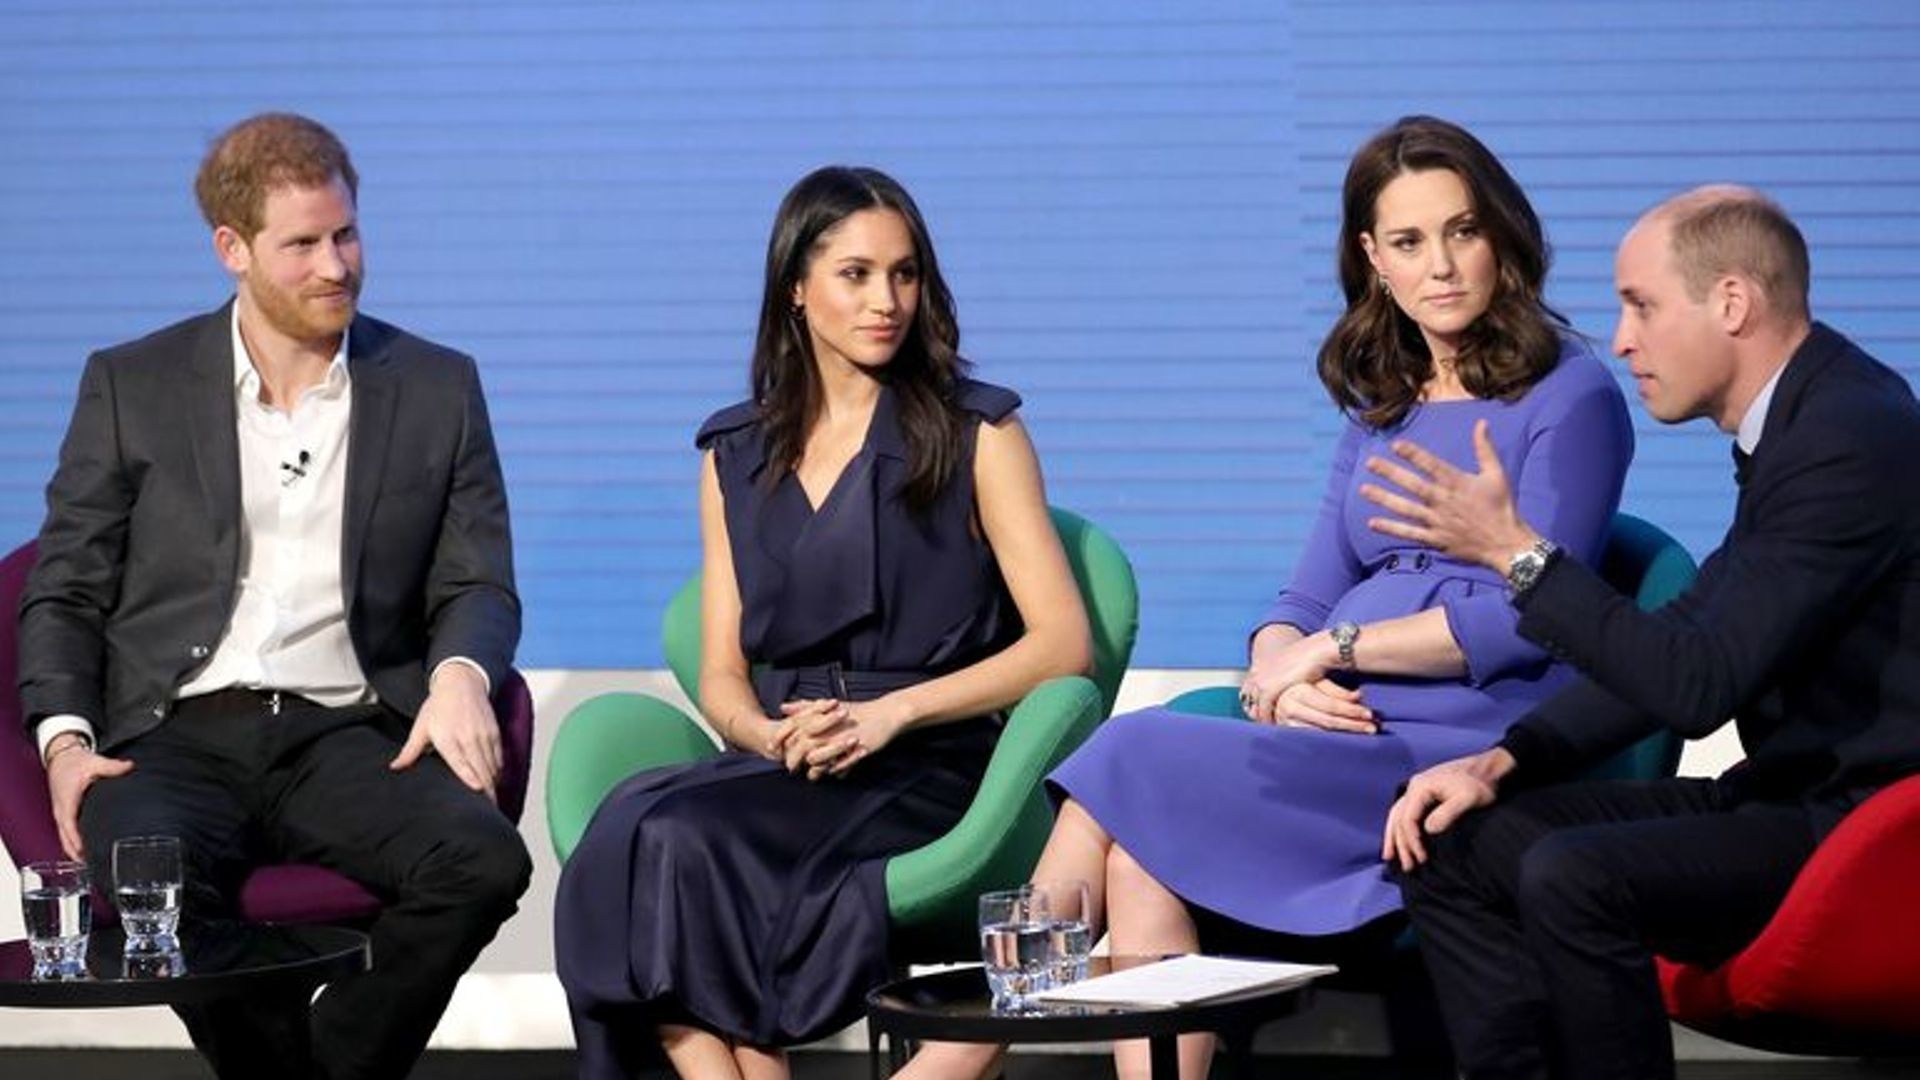 The Sussex And Cambridges' Mental Health Advert Crashes Website